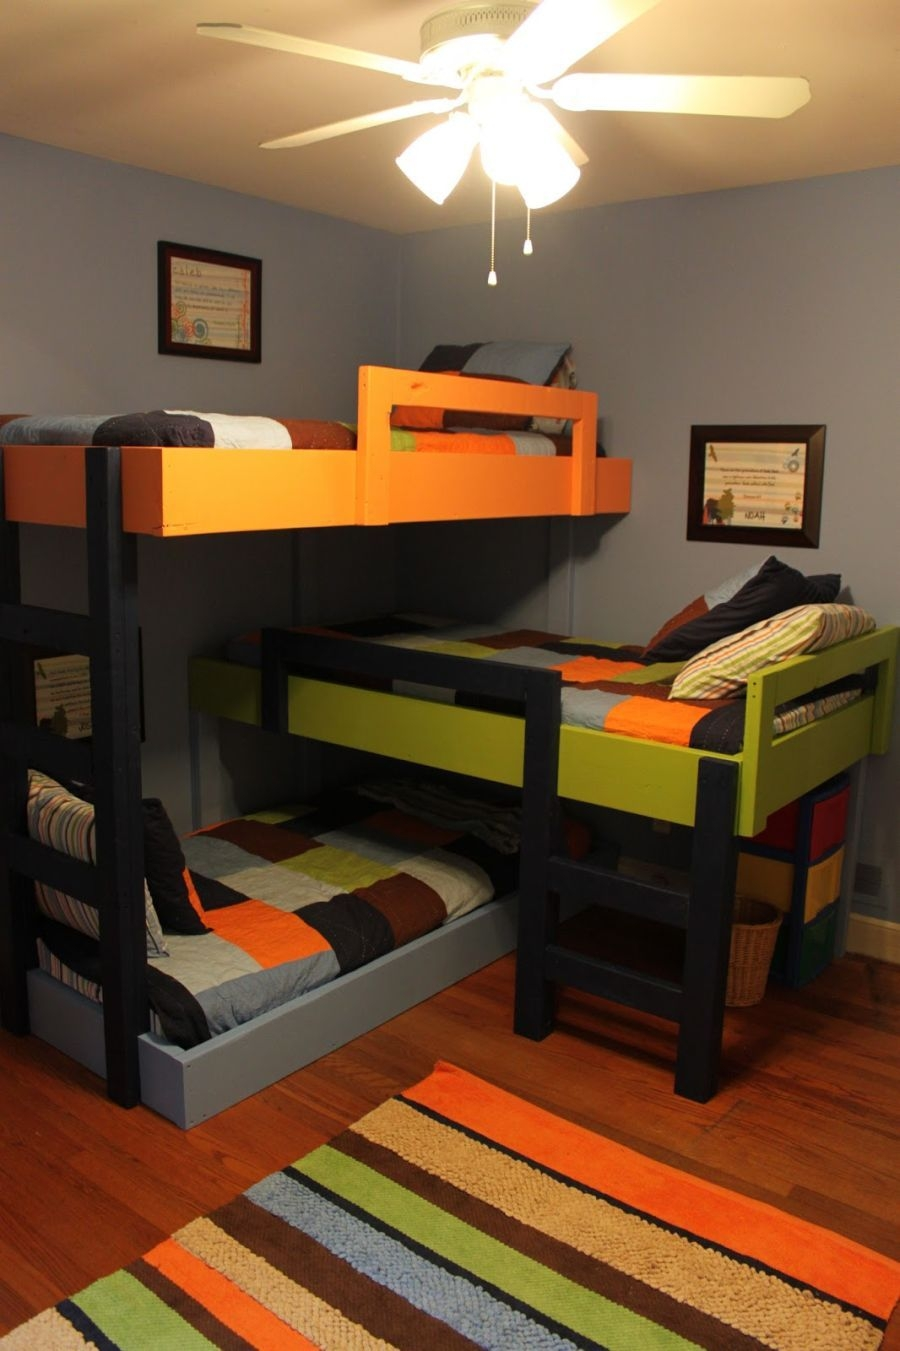 90 top Picks for A Triple Bunk Bed for Kids Rooms-9546